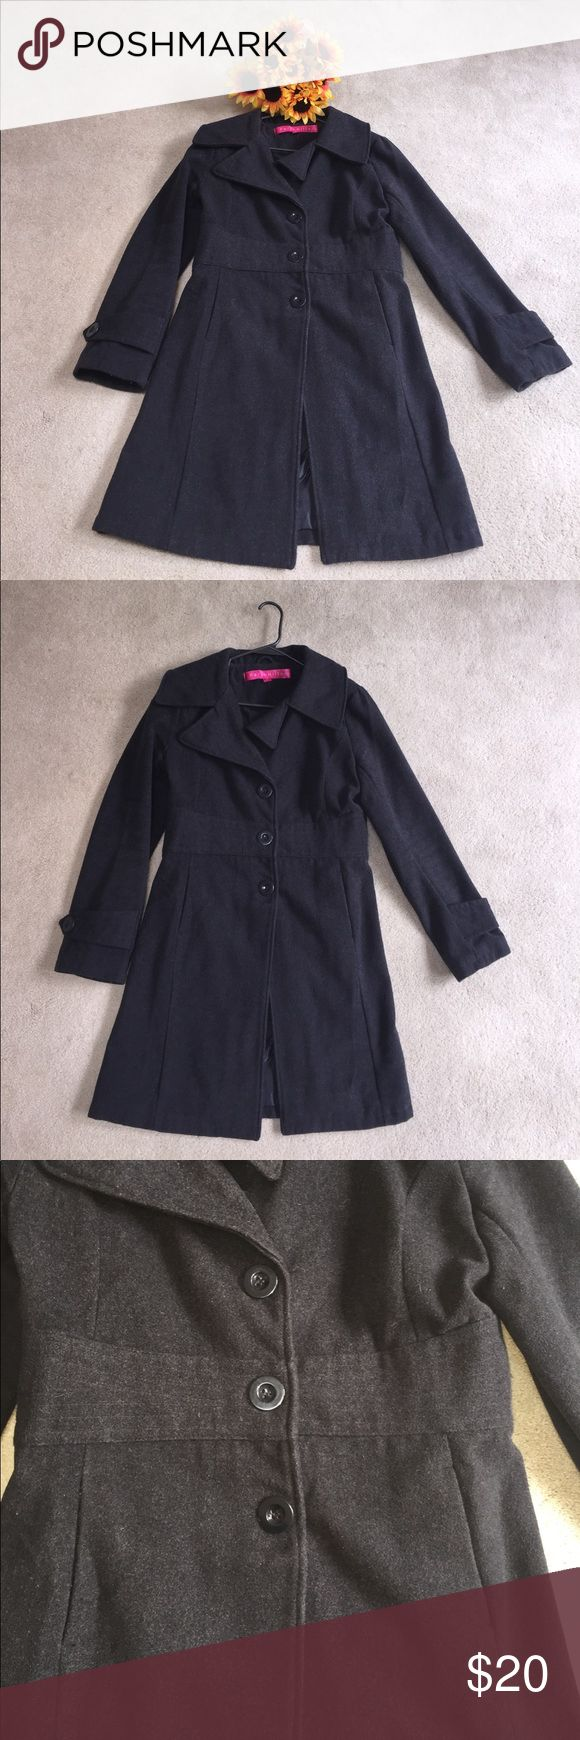 🌻PARIS HILTON PEACOAT GRAY SIZE LARGE🌻 Gray peacoat by Paris Hilton. Worn a few times but great condition. Tagged a size large. Would need a lint roller upon arrival 😏 Comes from pet friendly (and human friendly so don't spazz if a strand of my hair is noticed), smoke free home. No trades and no model. Paris Hilton Jackets & Coats Pea Coats